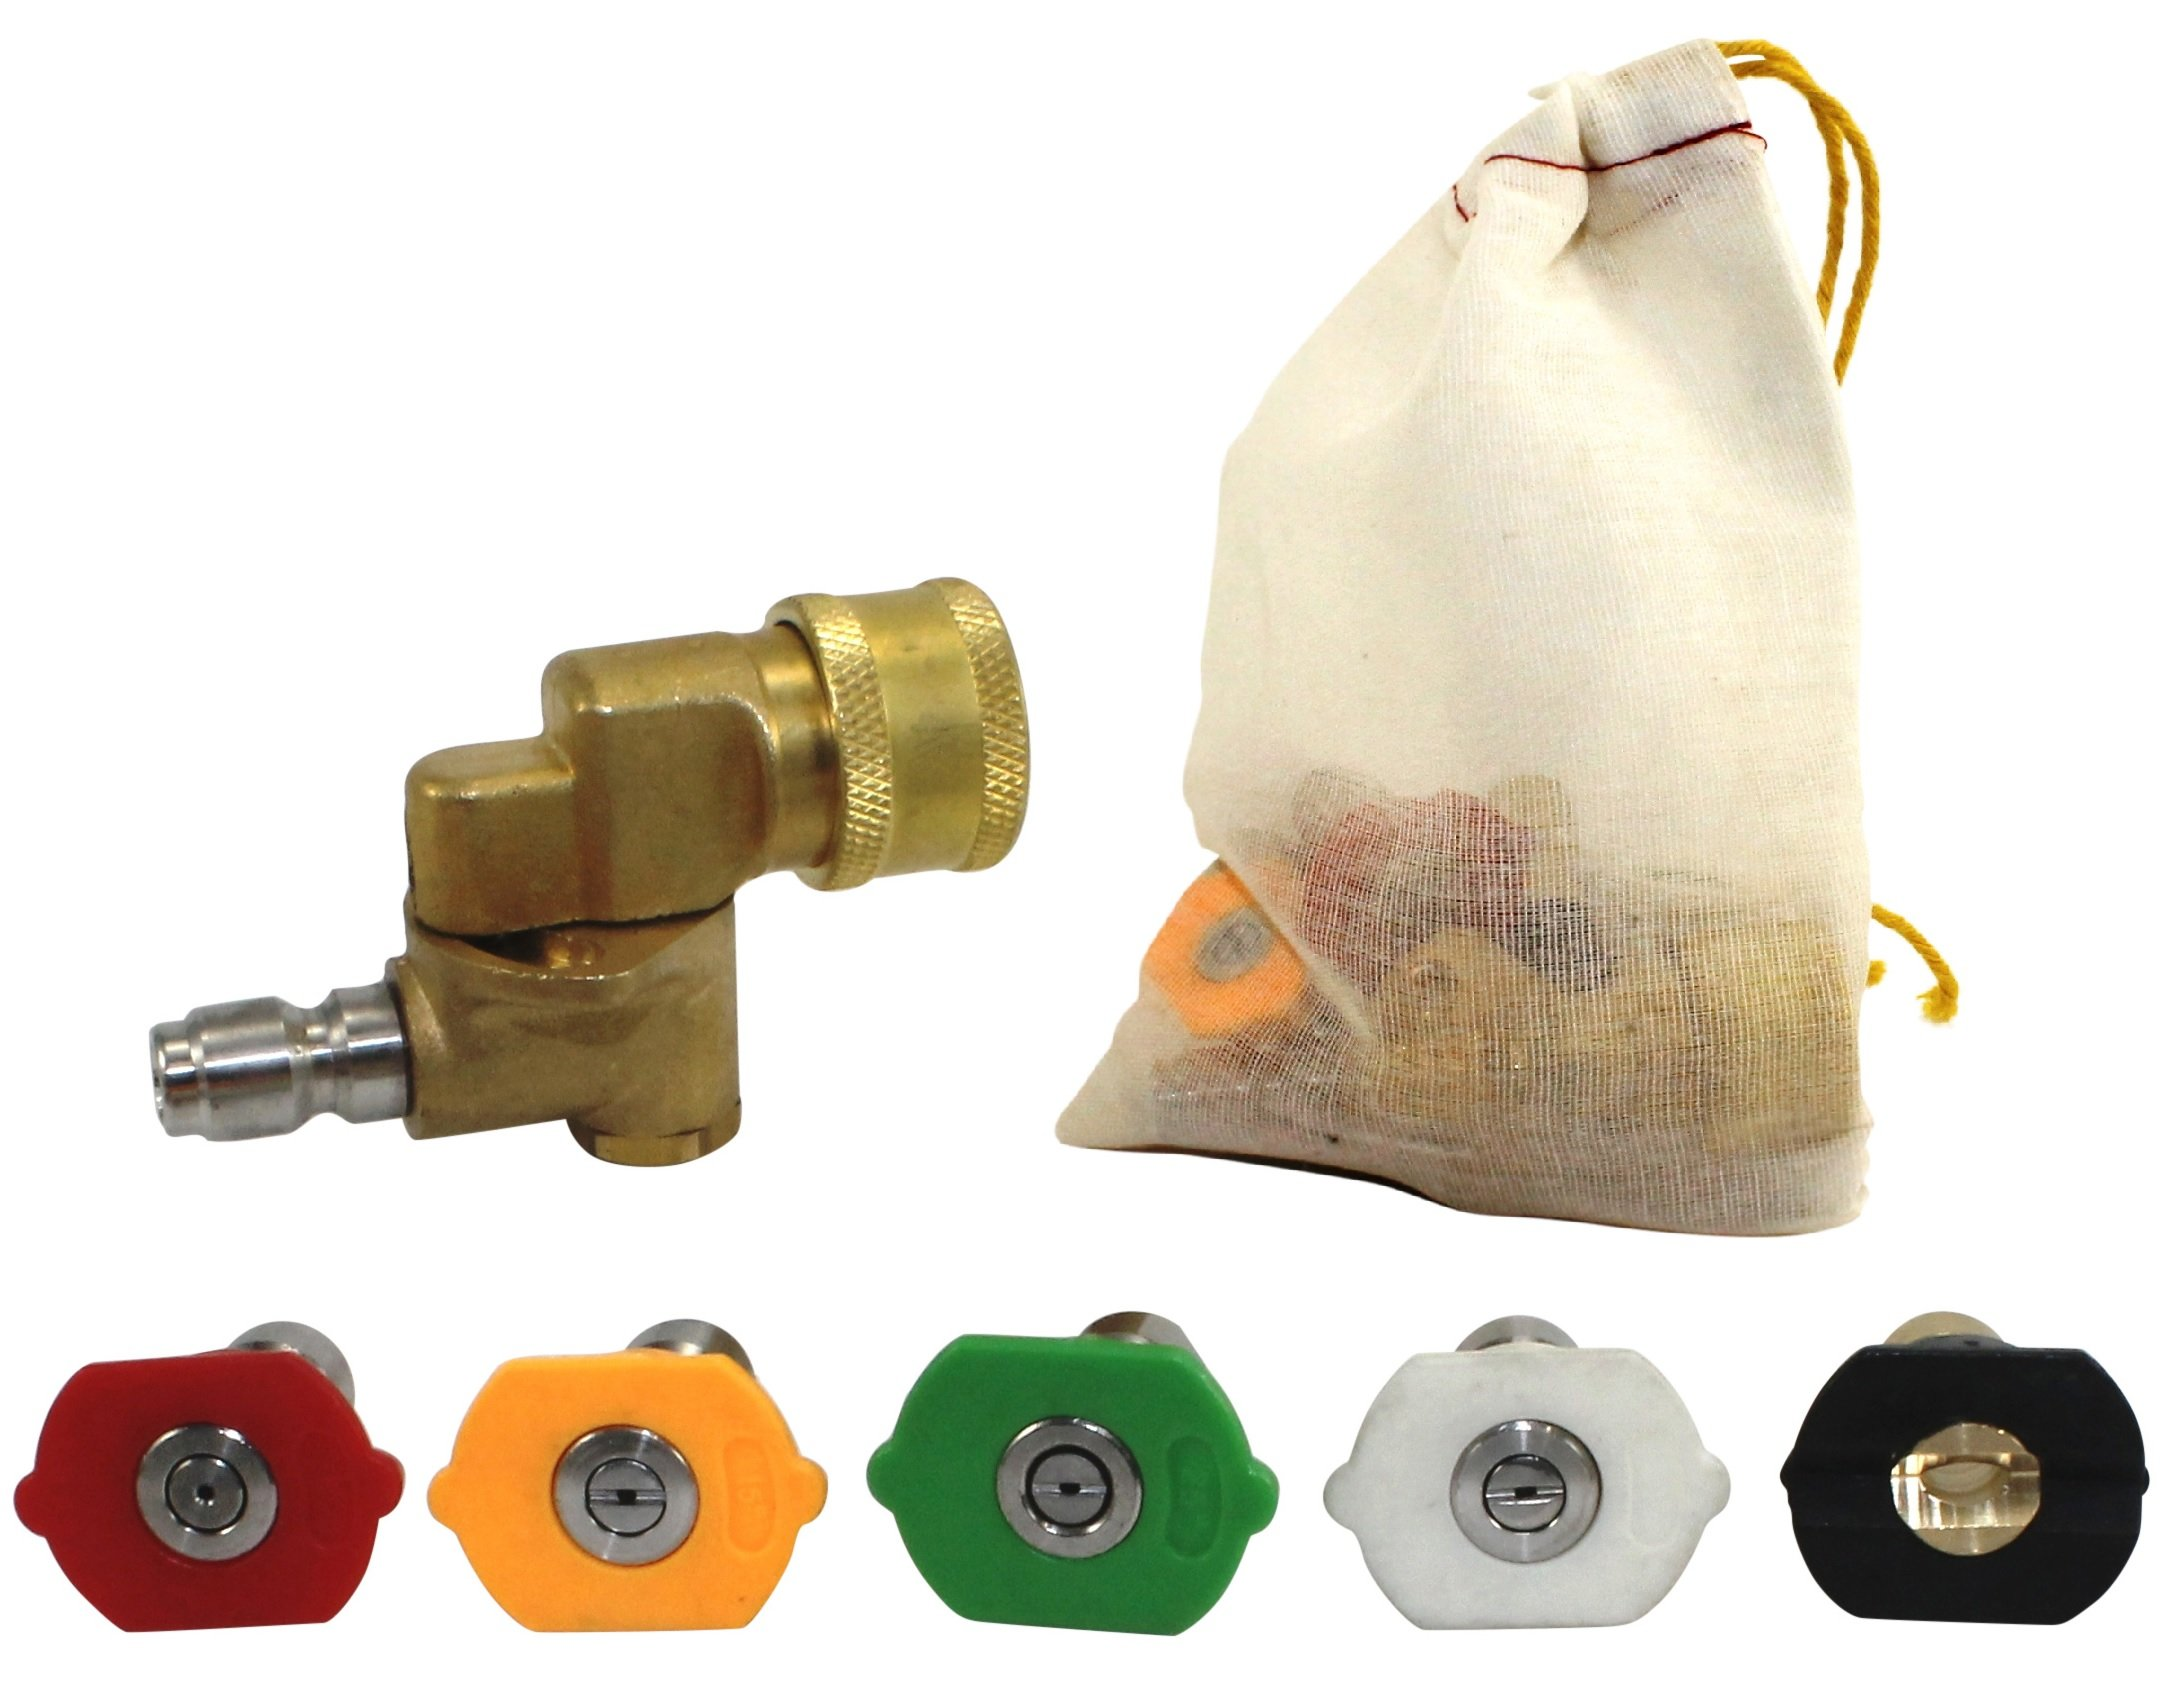 Pressure Washer Nozzle Tips and Quick Connect Pivot Coupler – ¼ in, 3.0 GPM, 1500-3750 PSI, 0, 15, 25, 45, 60 – For Most Power Washer Spray Wands and Accessories – Free Industrial Cotton Bag